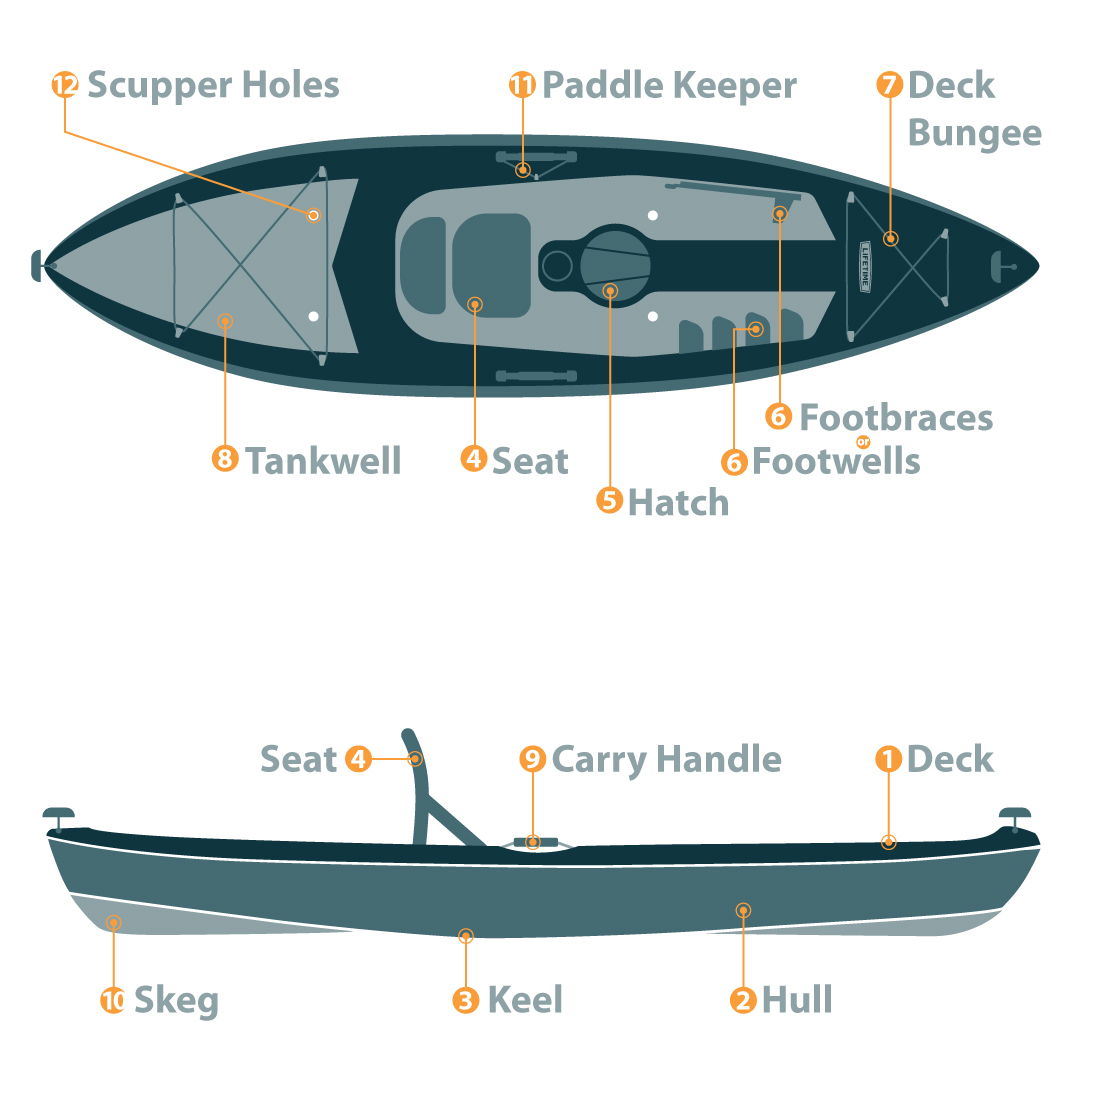 Anatomy of a Sit-On-Top Kayak